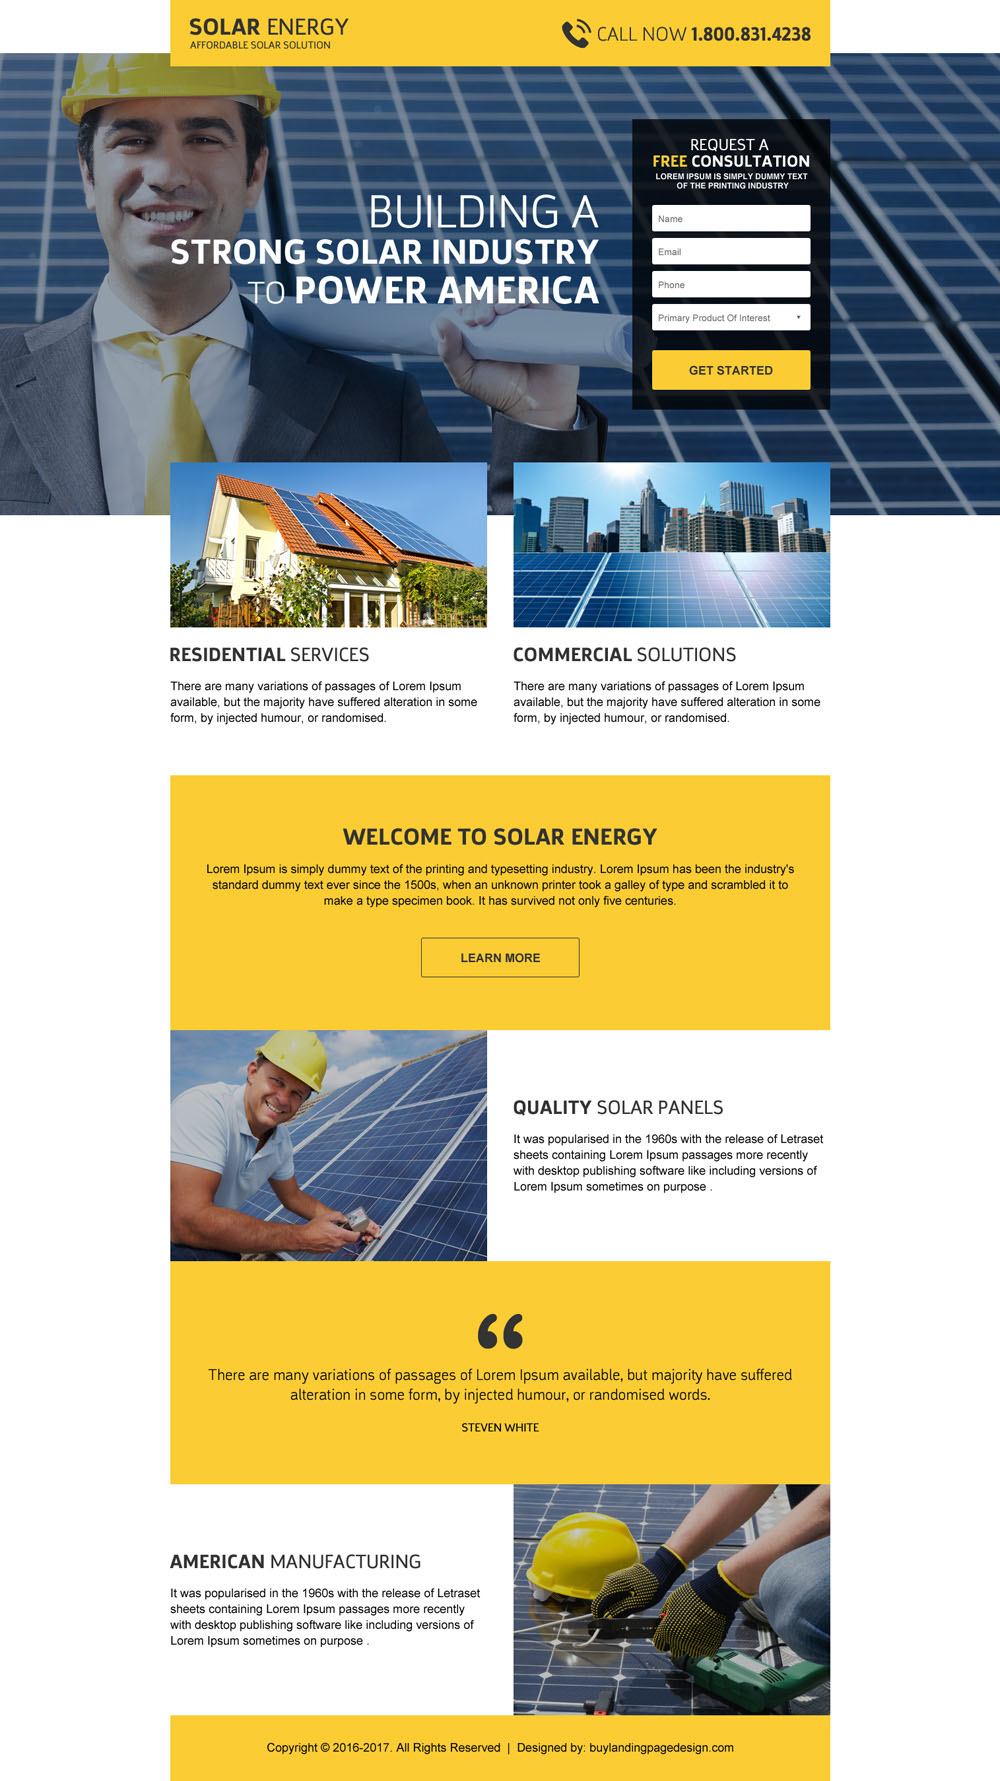 solar-panel-installation-service-free-quote-lead-generation-landing-page-design-002